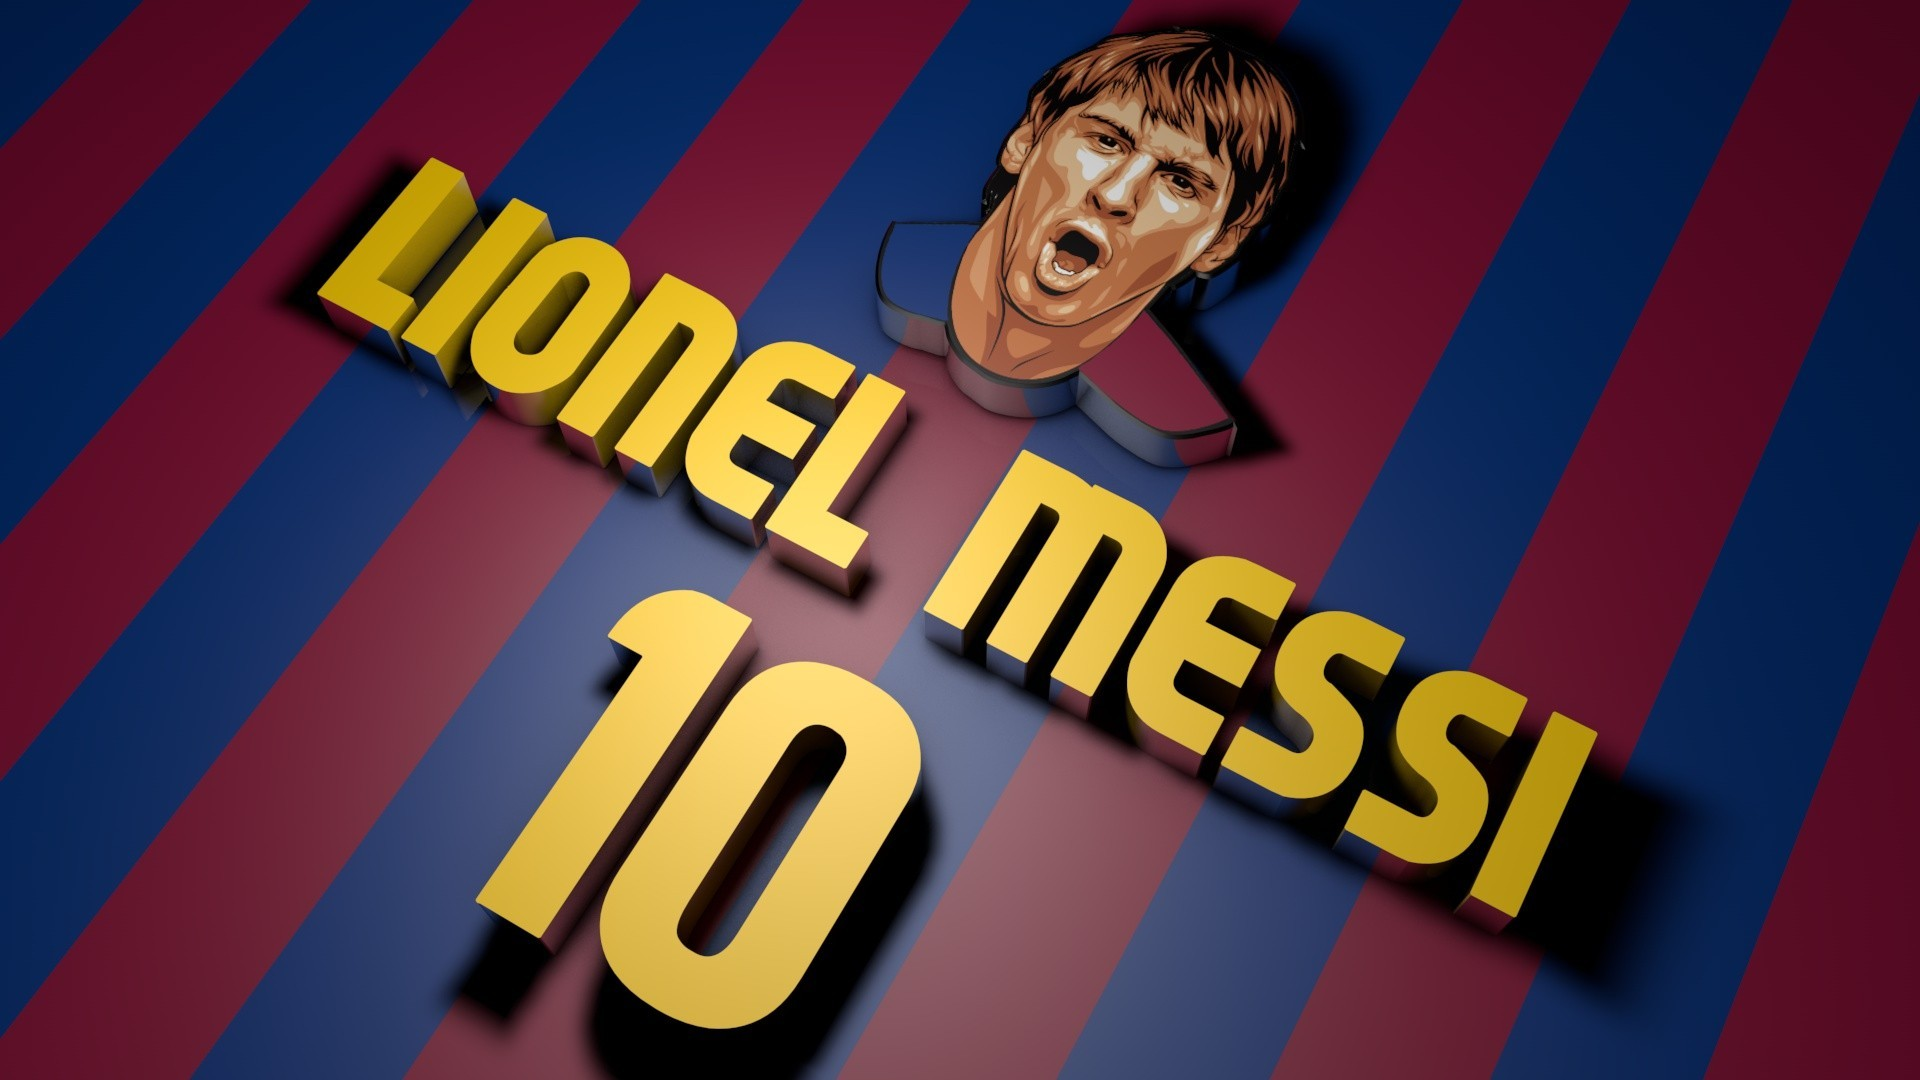 Soccer Lionel Messi Fc Barcelona Hd Wallpaper